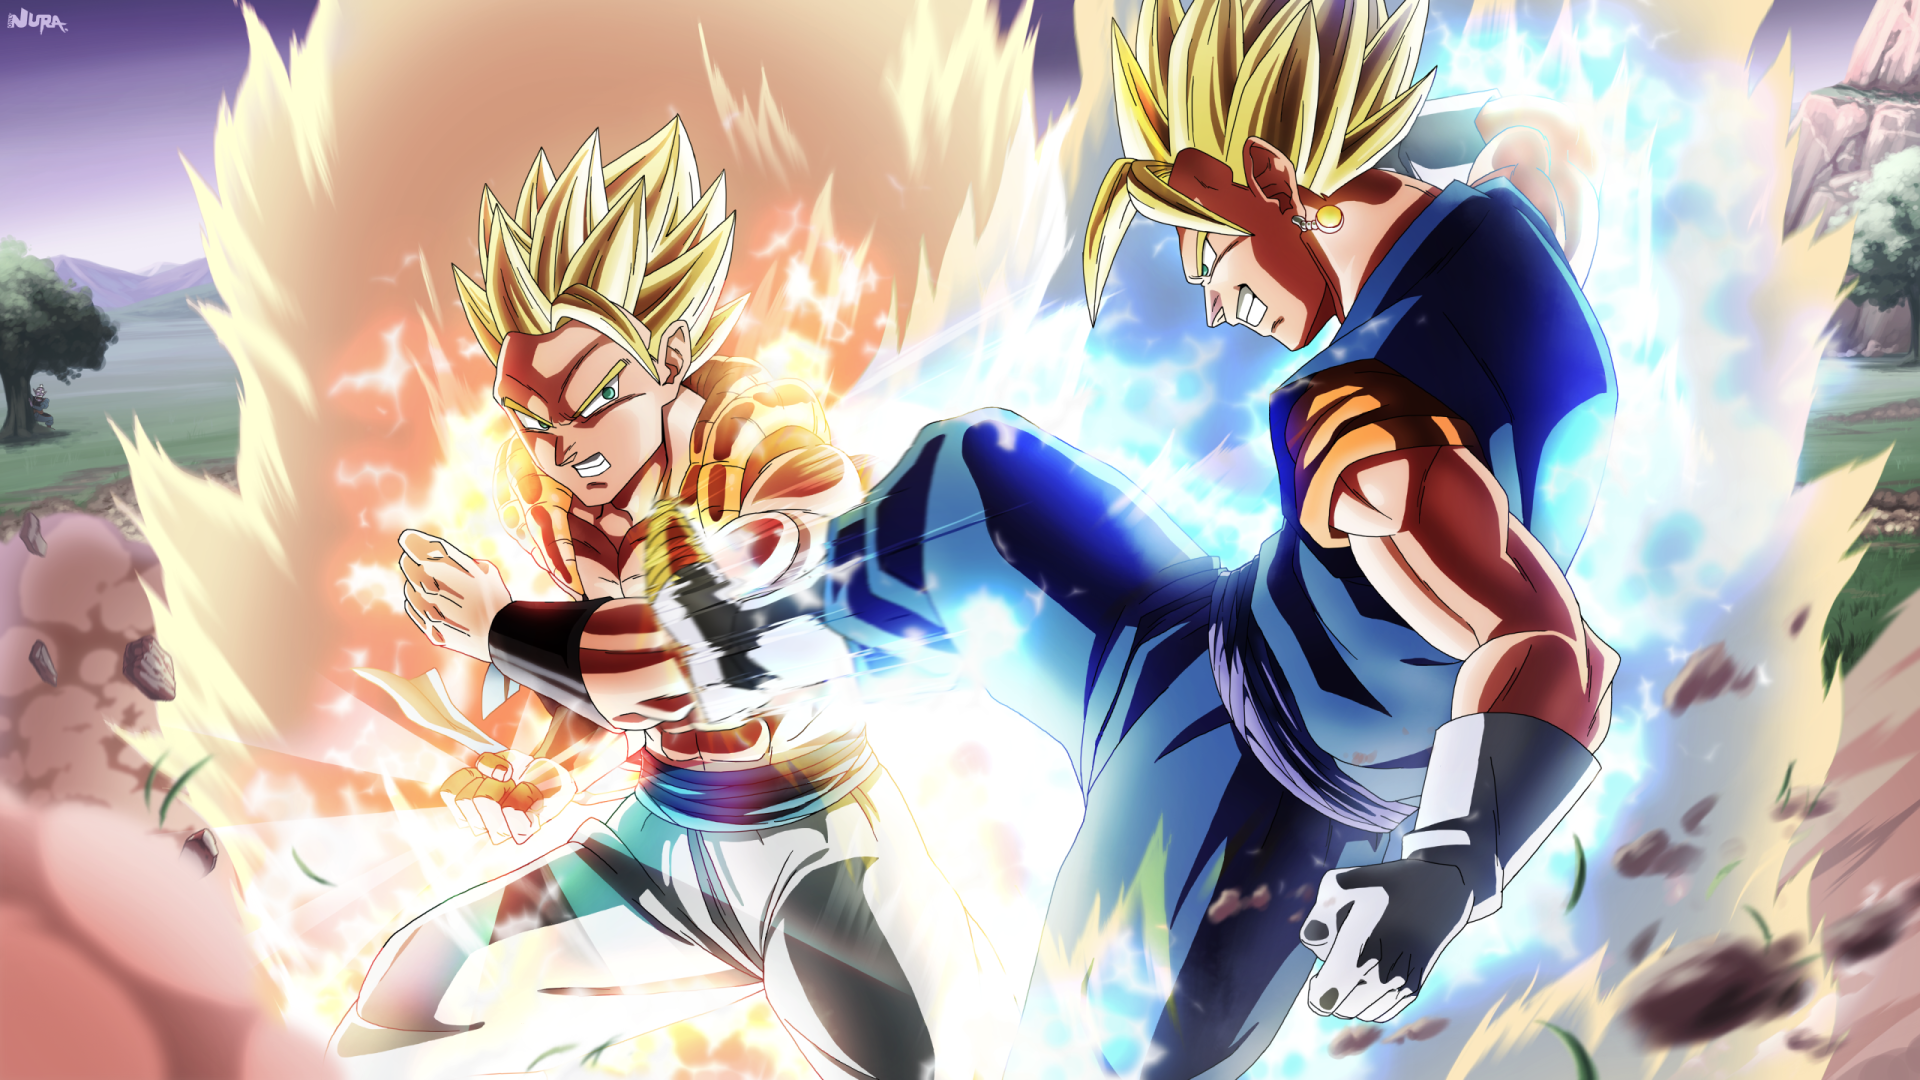 Anime - Dragon Ball Z  Vegito (Dragon Ball) Gogeta (Dragon Ball) Bakgrund